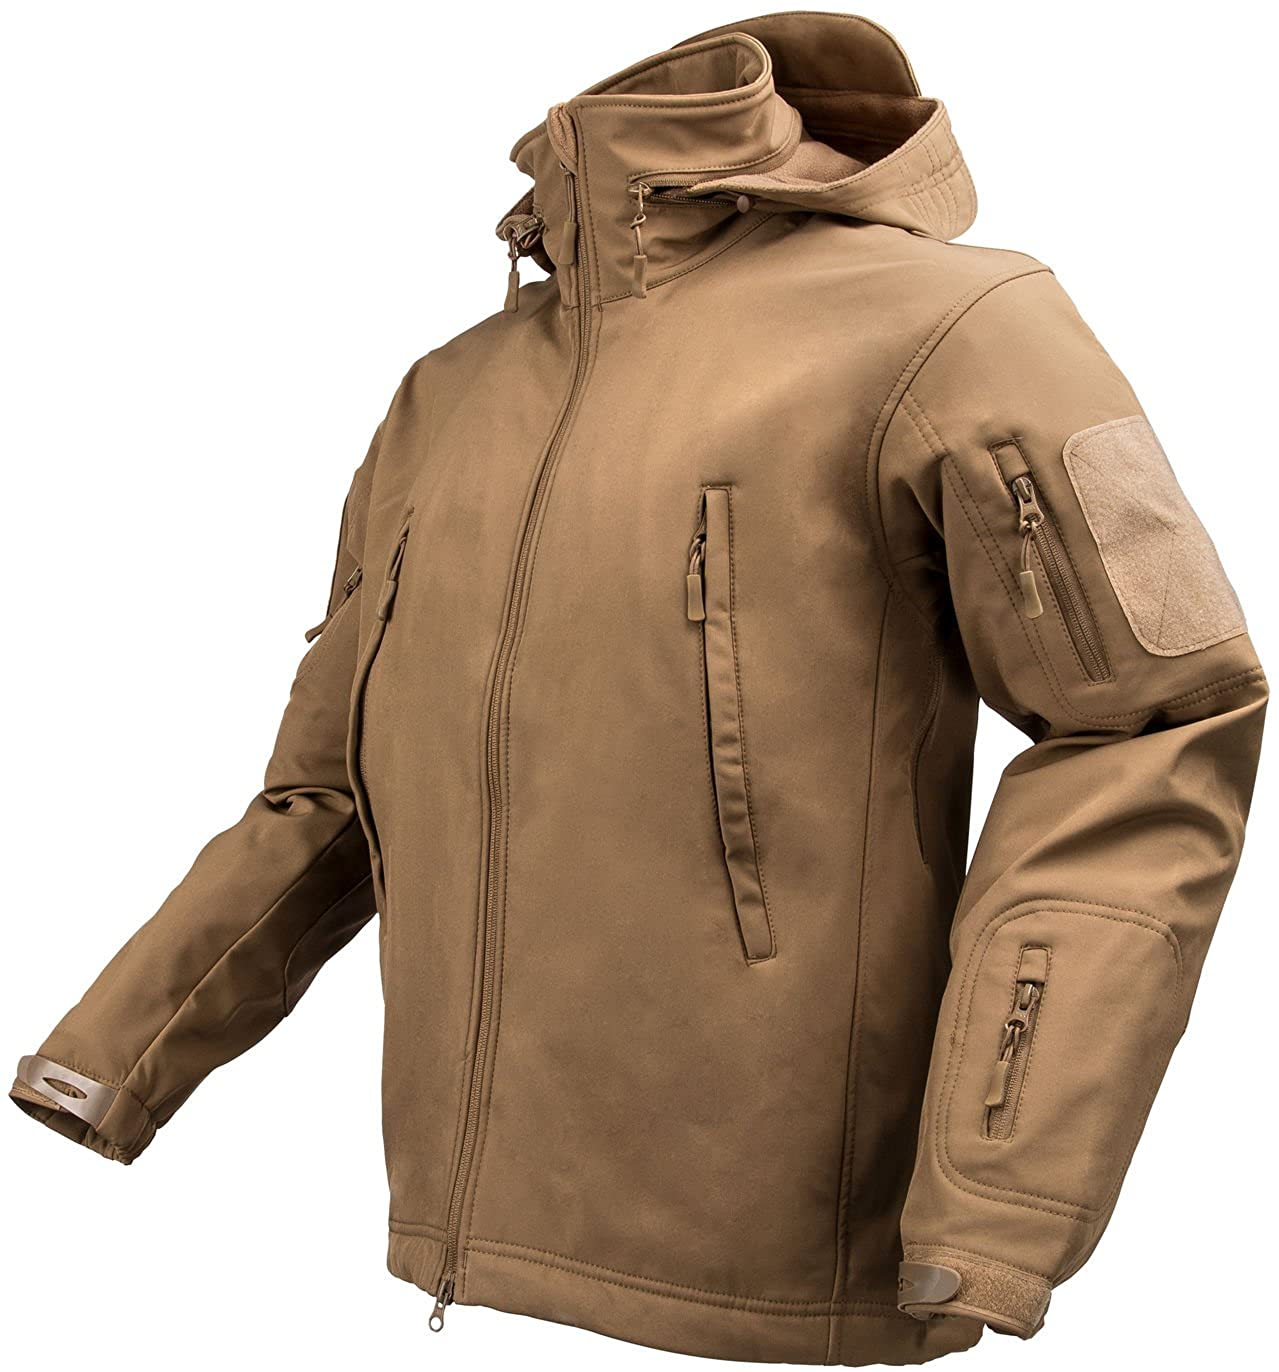 Maelstrom TAC PRO Soft Shell Tactical Jacket AP001